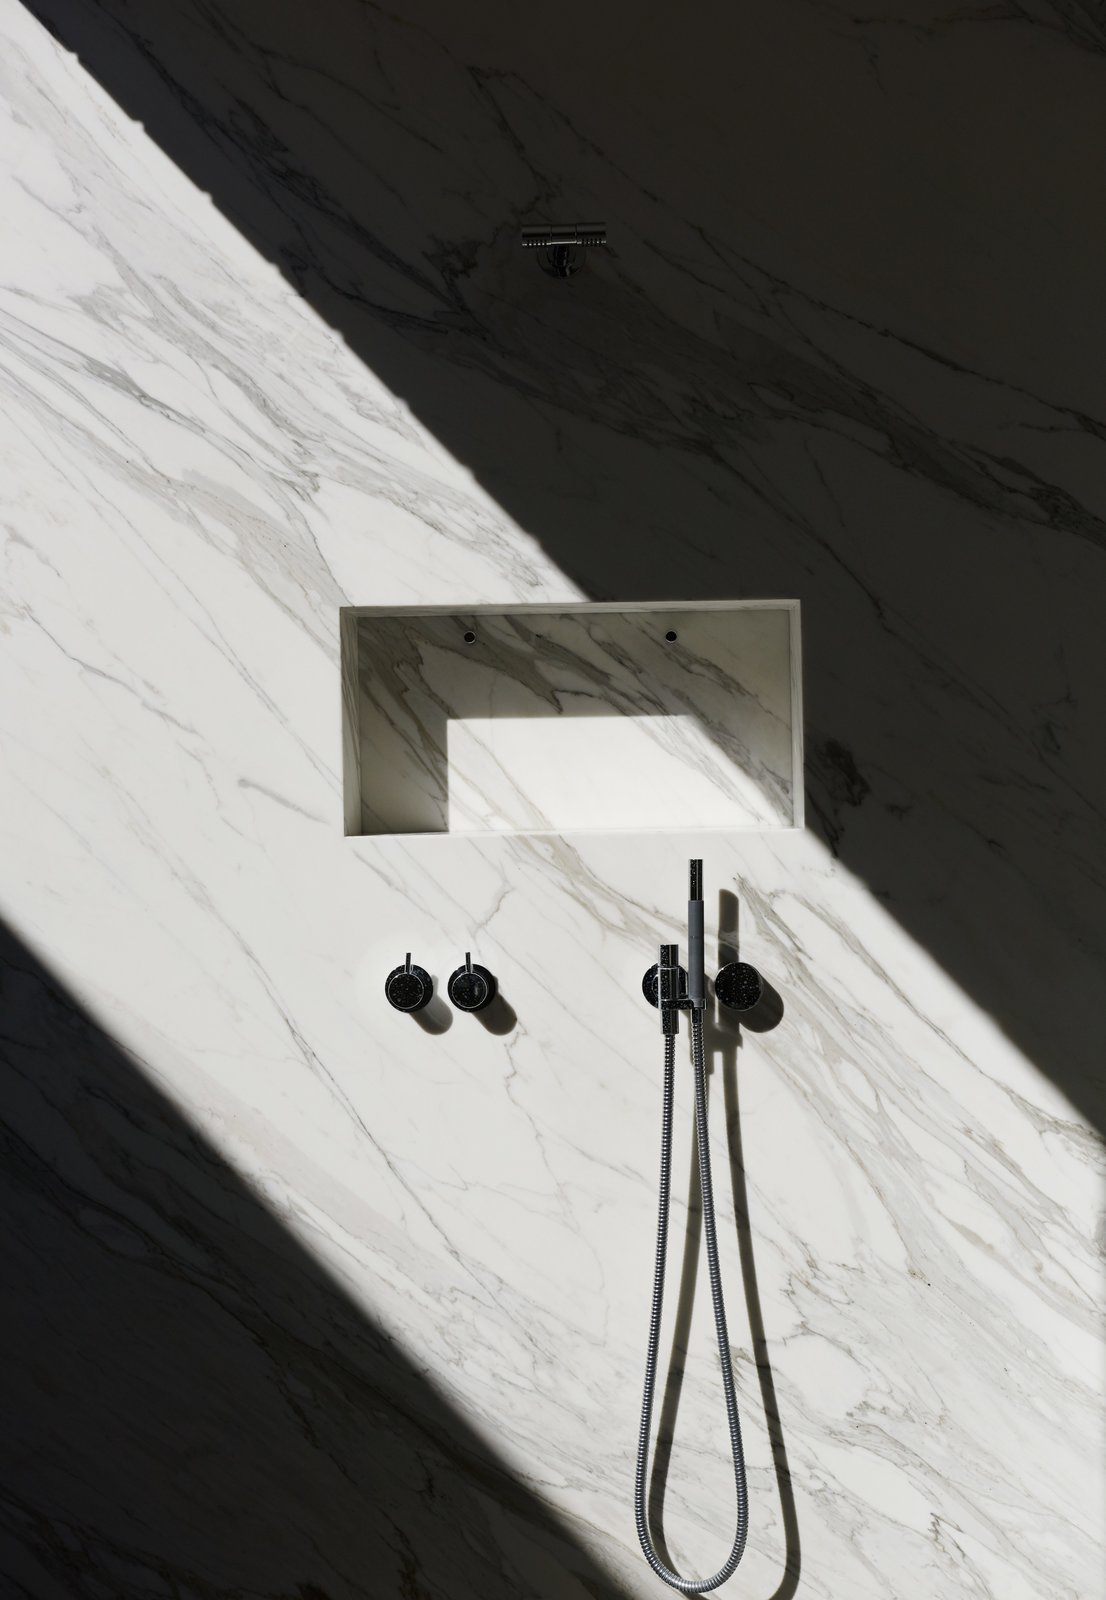 #bathandspa #modern #moderndesign #interiordesign #bathroom #fixtures #inside #interior #naturallighting #marble #shower #glassatrium #mastersuite #vola   Photo courtesy of Bryce Duffy  Bathroom